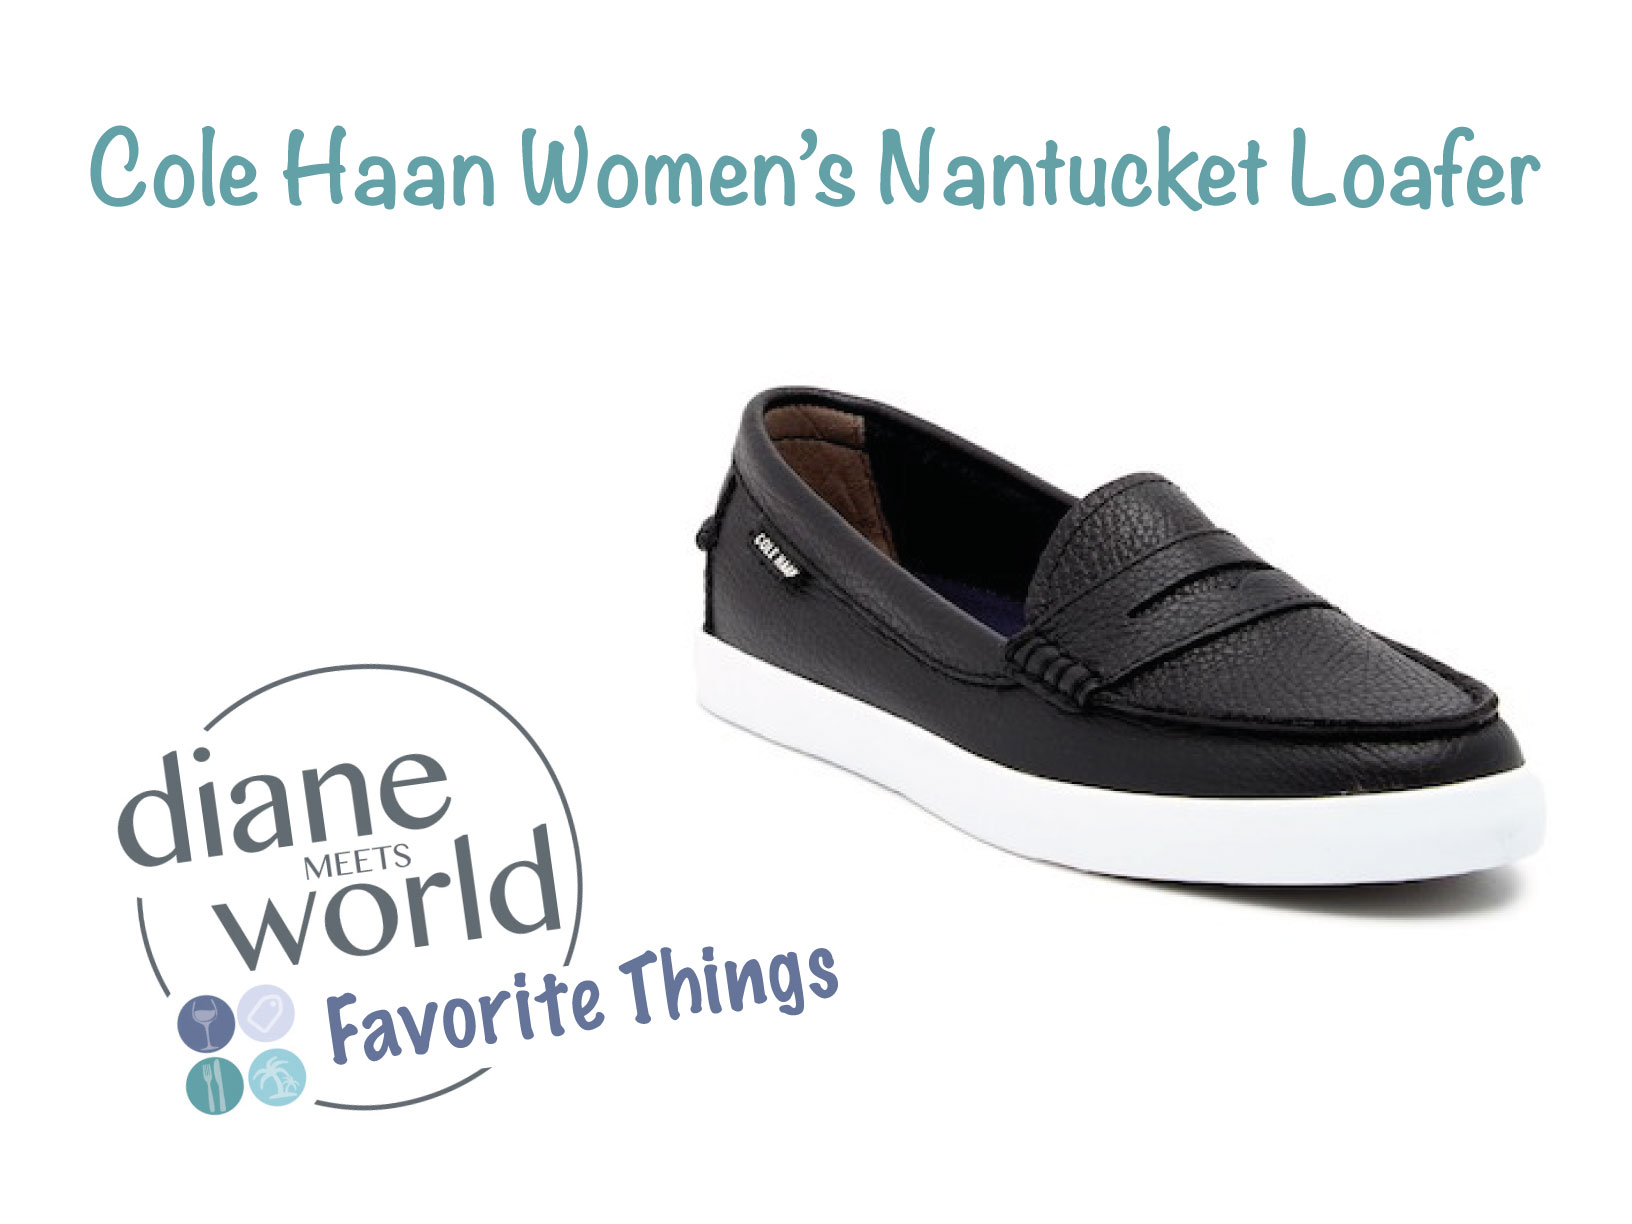 10607782994 Cole Haan Women s Nantucket Loafer - Diane Meets World